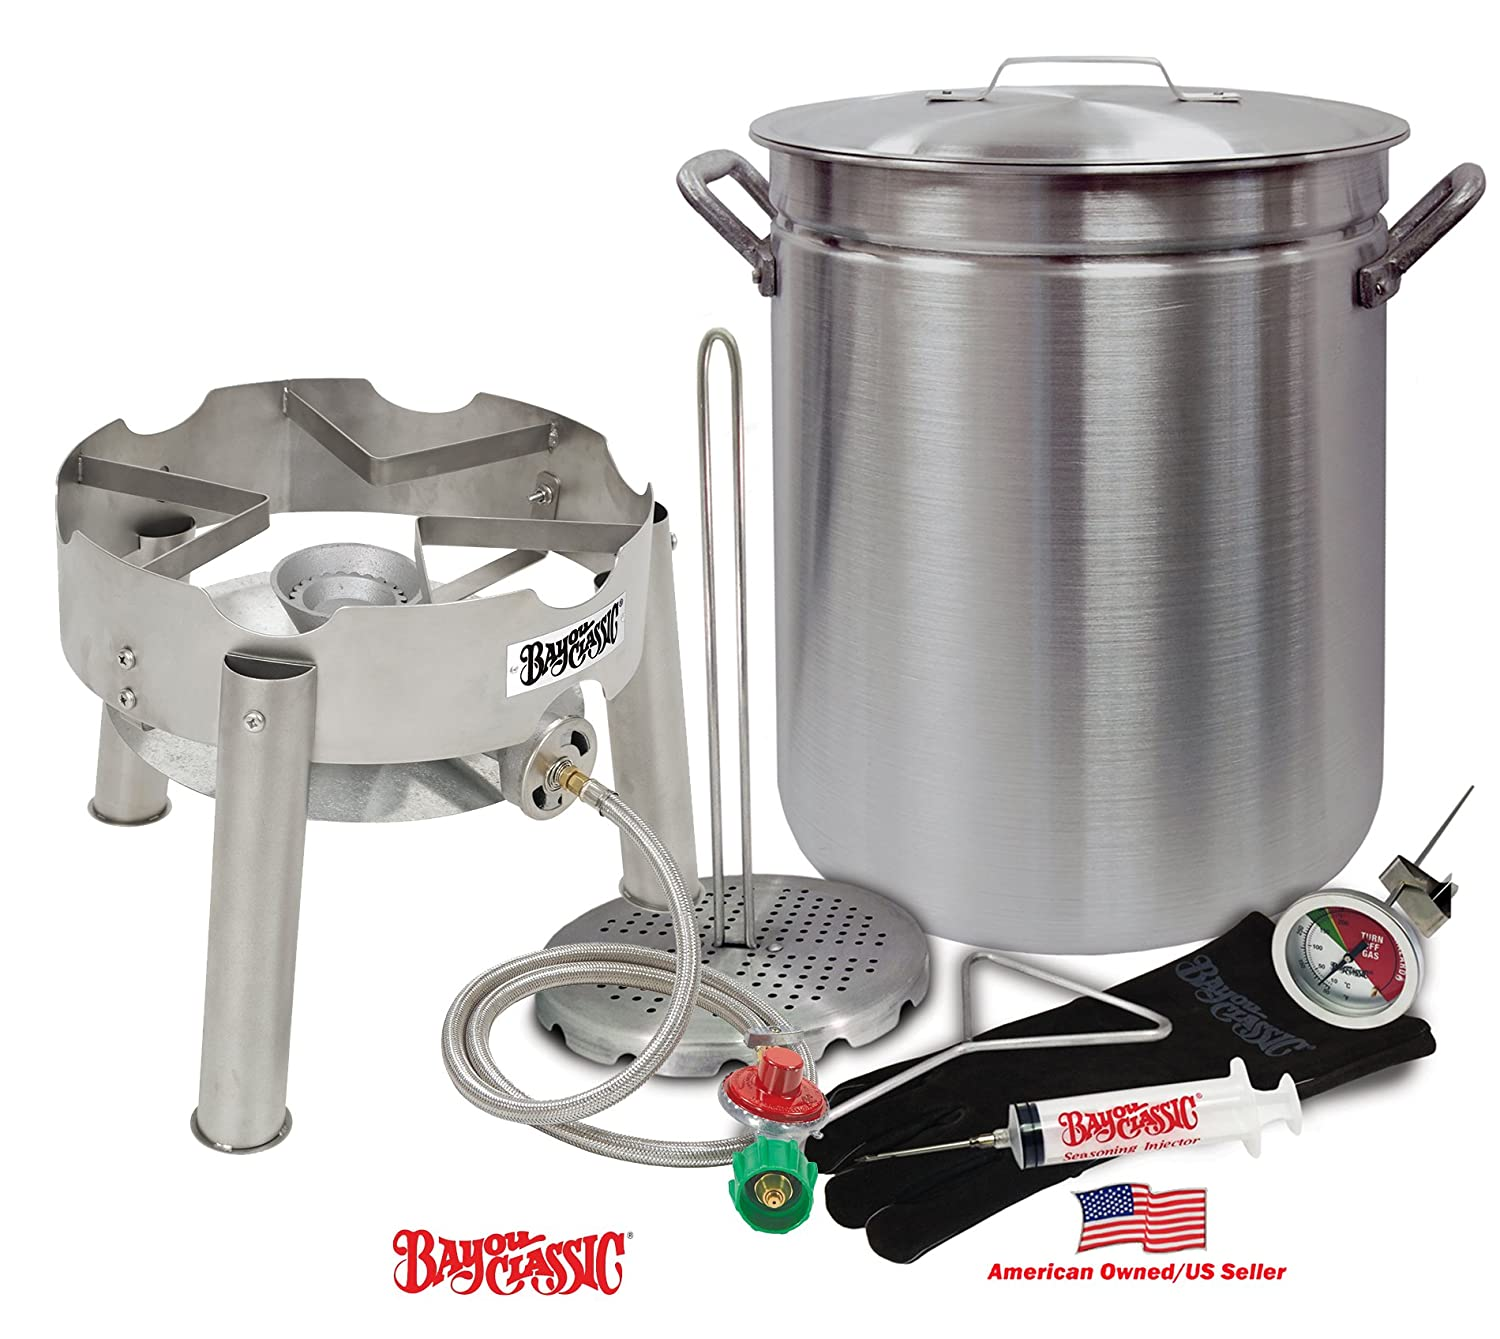 LBS Turkeys With Low Profile Stainless Steel Burner by Bayou Classic Deep Fryer Kit 42 Quart Aluminum GRAND GOBBLER for 25